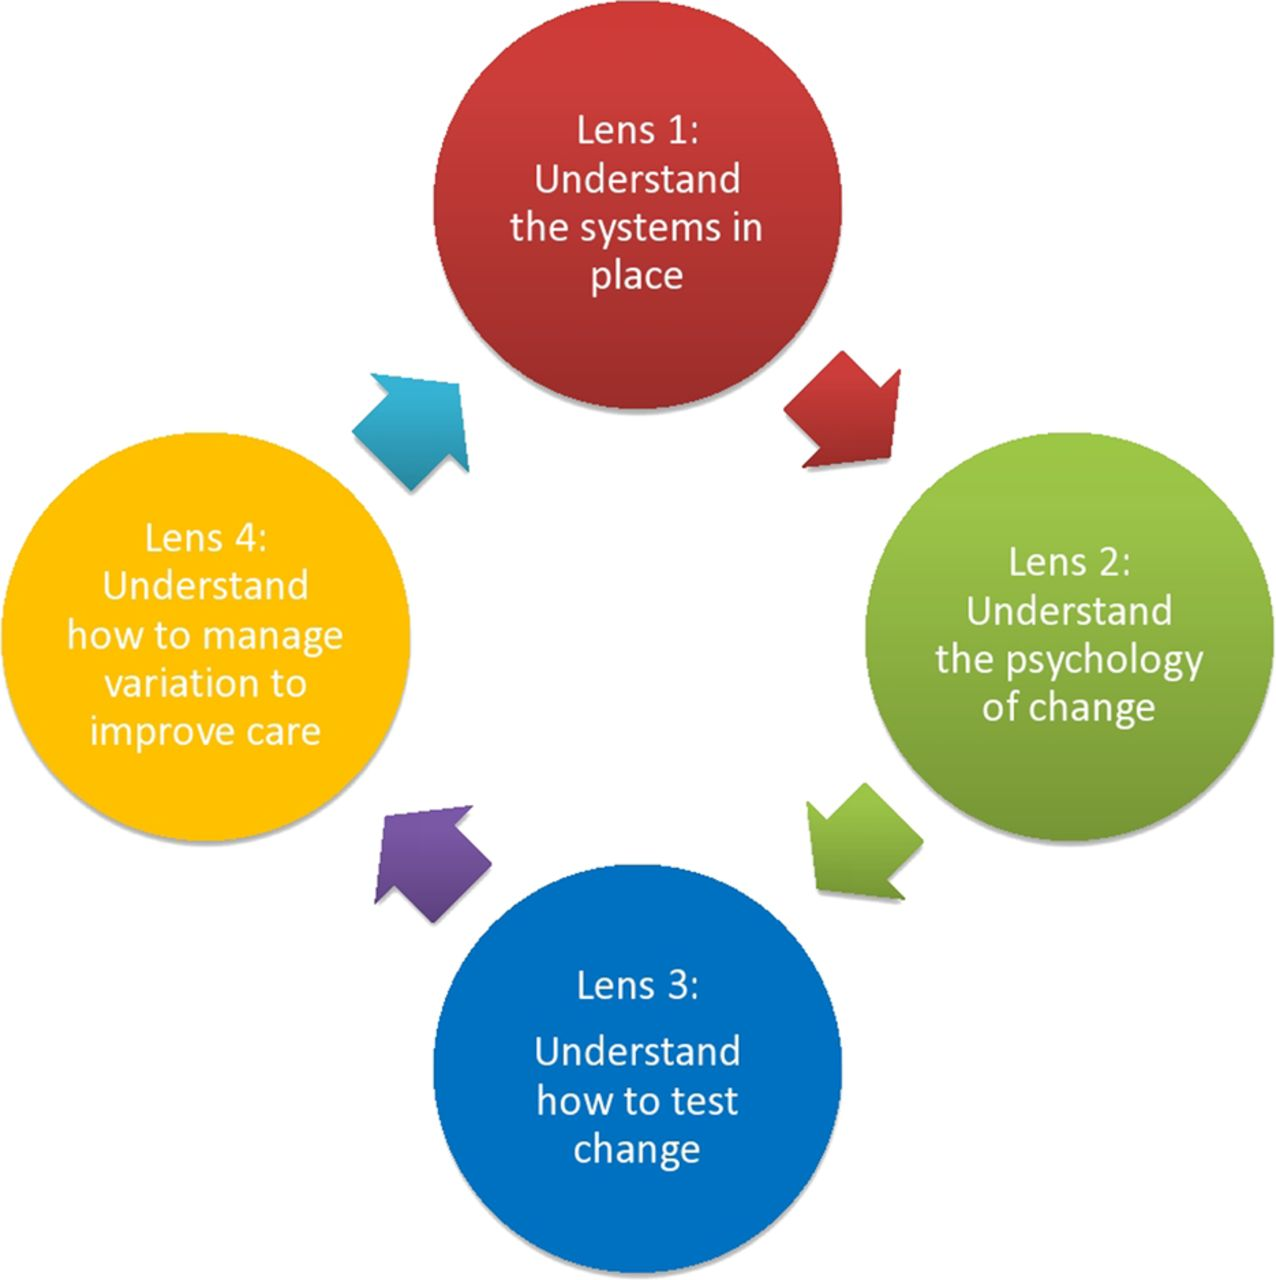 Equipped Overcoming Barriers To Change To Improve Quality